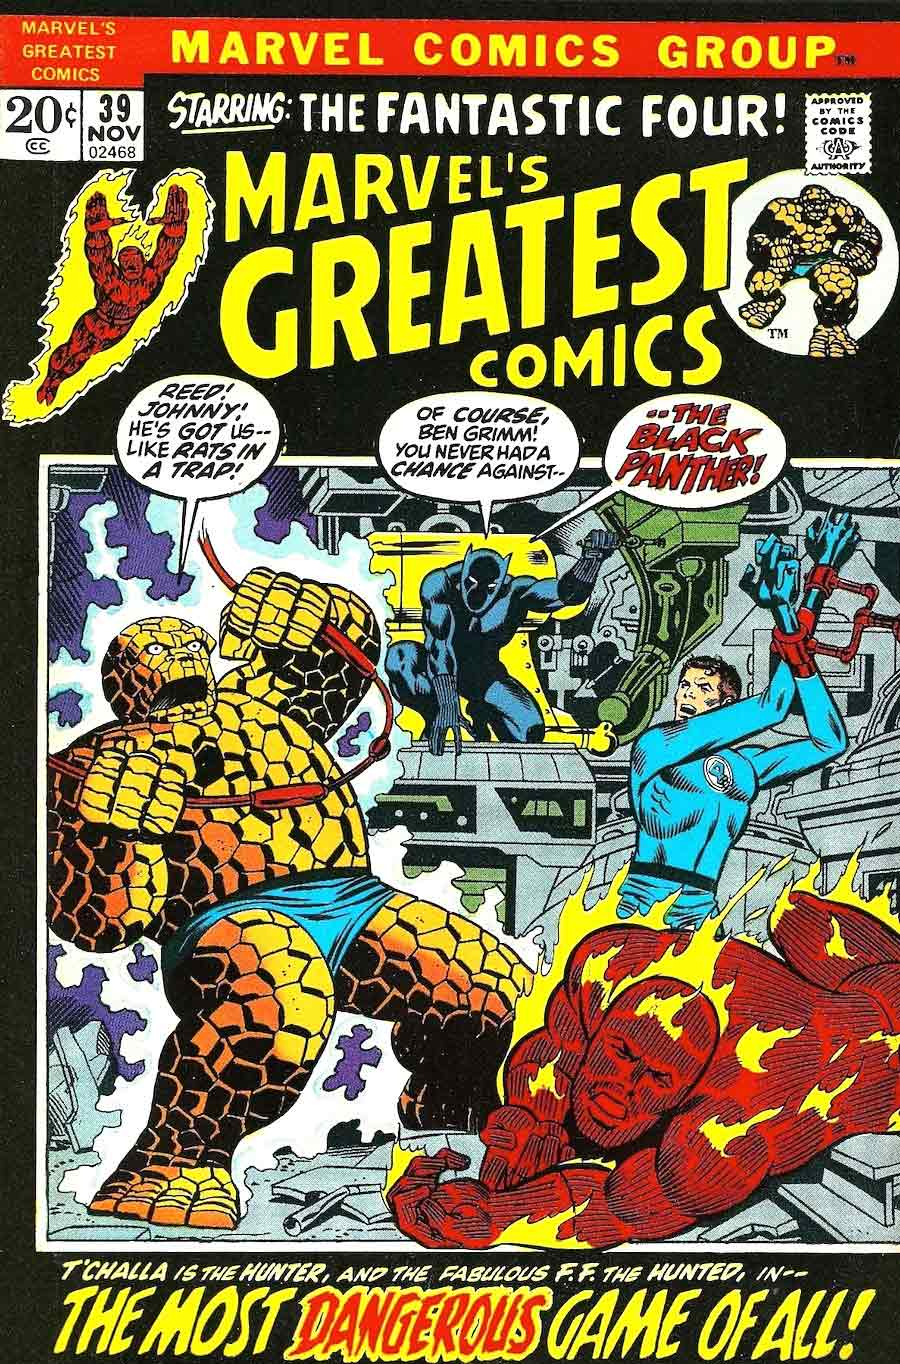 Marvel's Greatest Comics #39 bronze age 1970s marvel comic book cover art by Jim Starlin